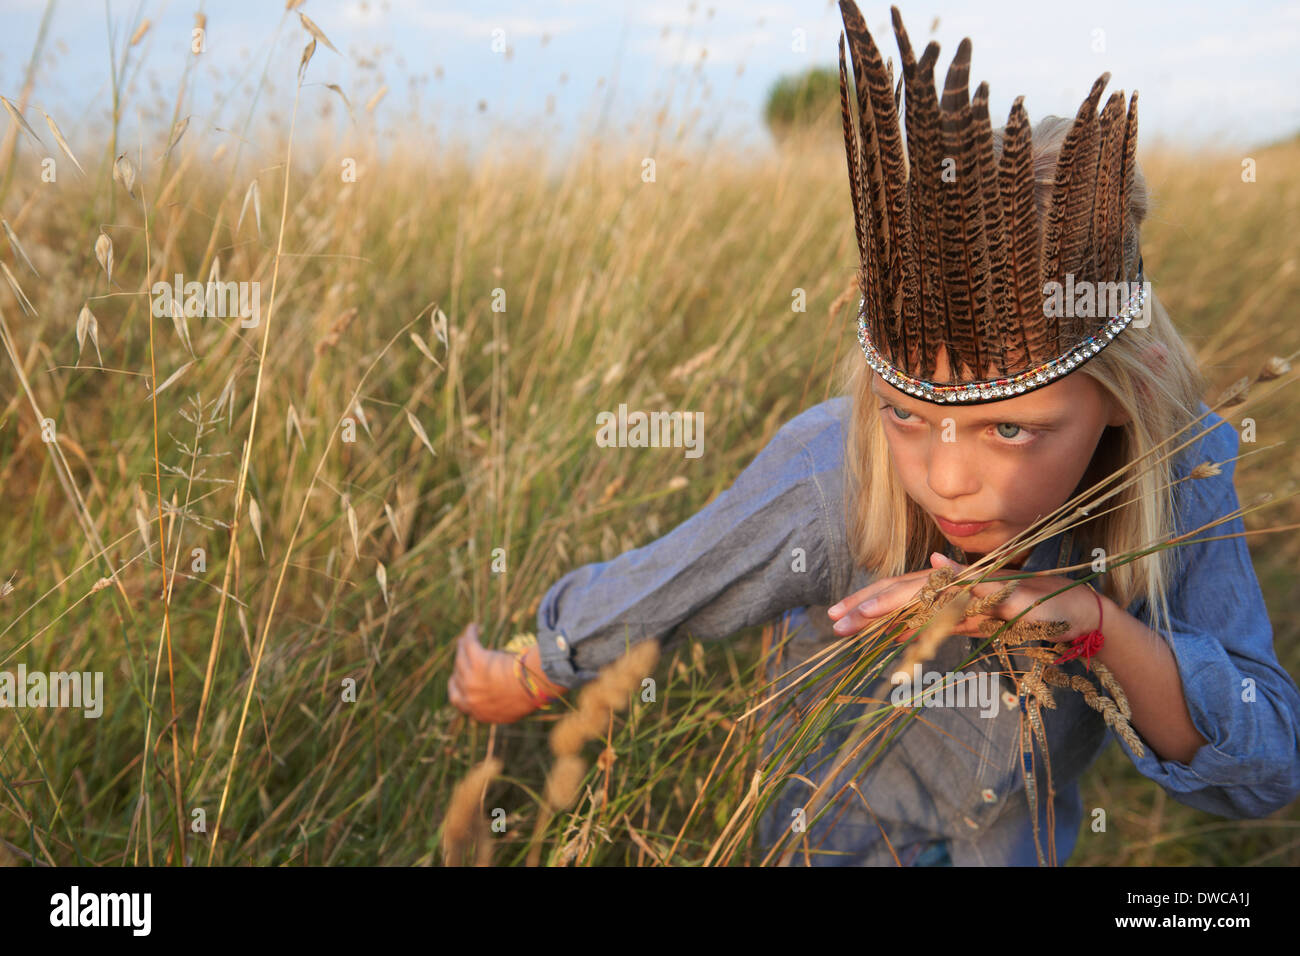 Fille de se cacher dans l'herbe haute habillé en native American Photo Stock